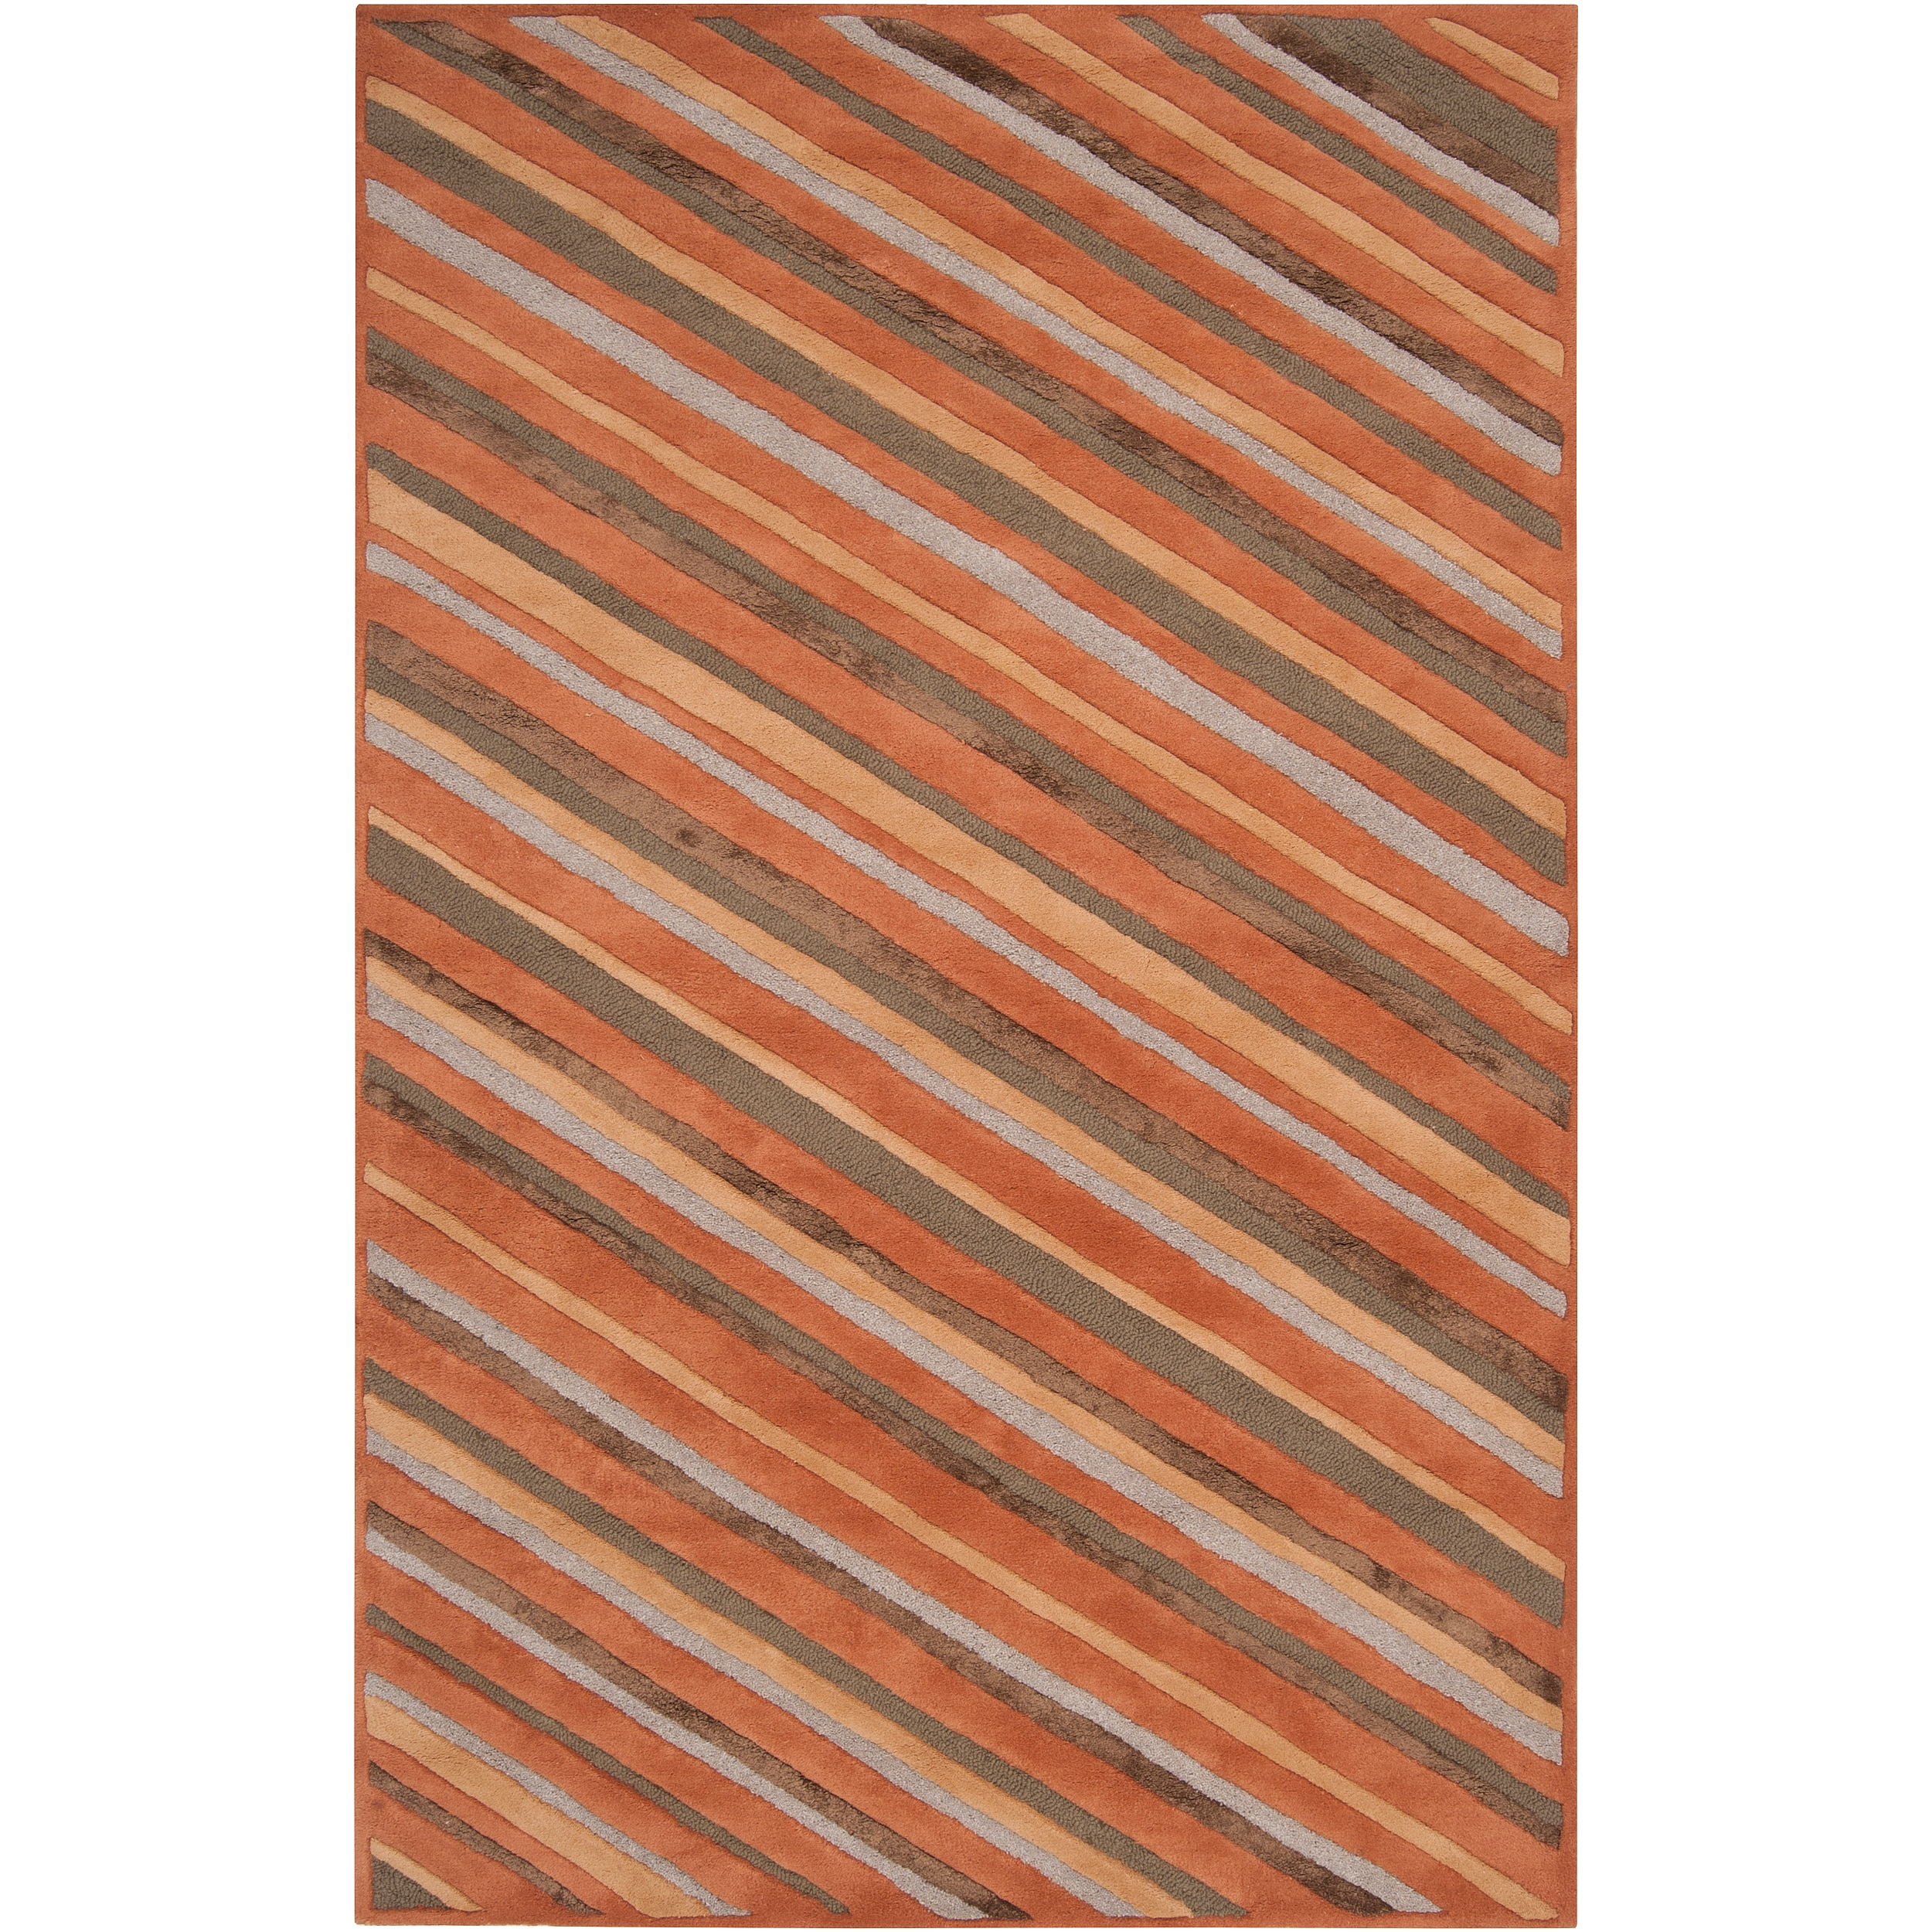 Hand-tufted Brown Cane Diagonal Stripes Wool Rug (9' x 13')